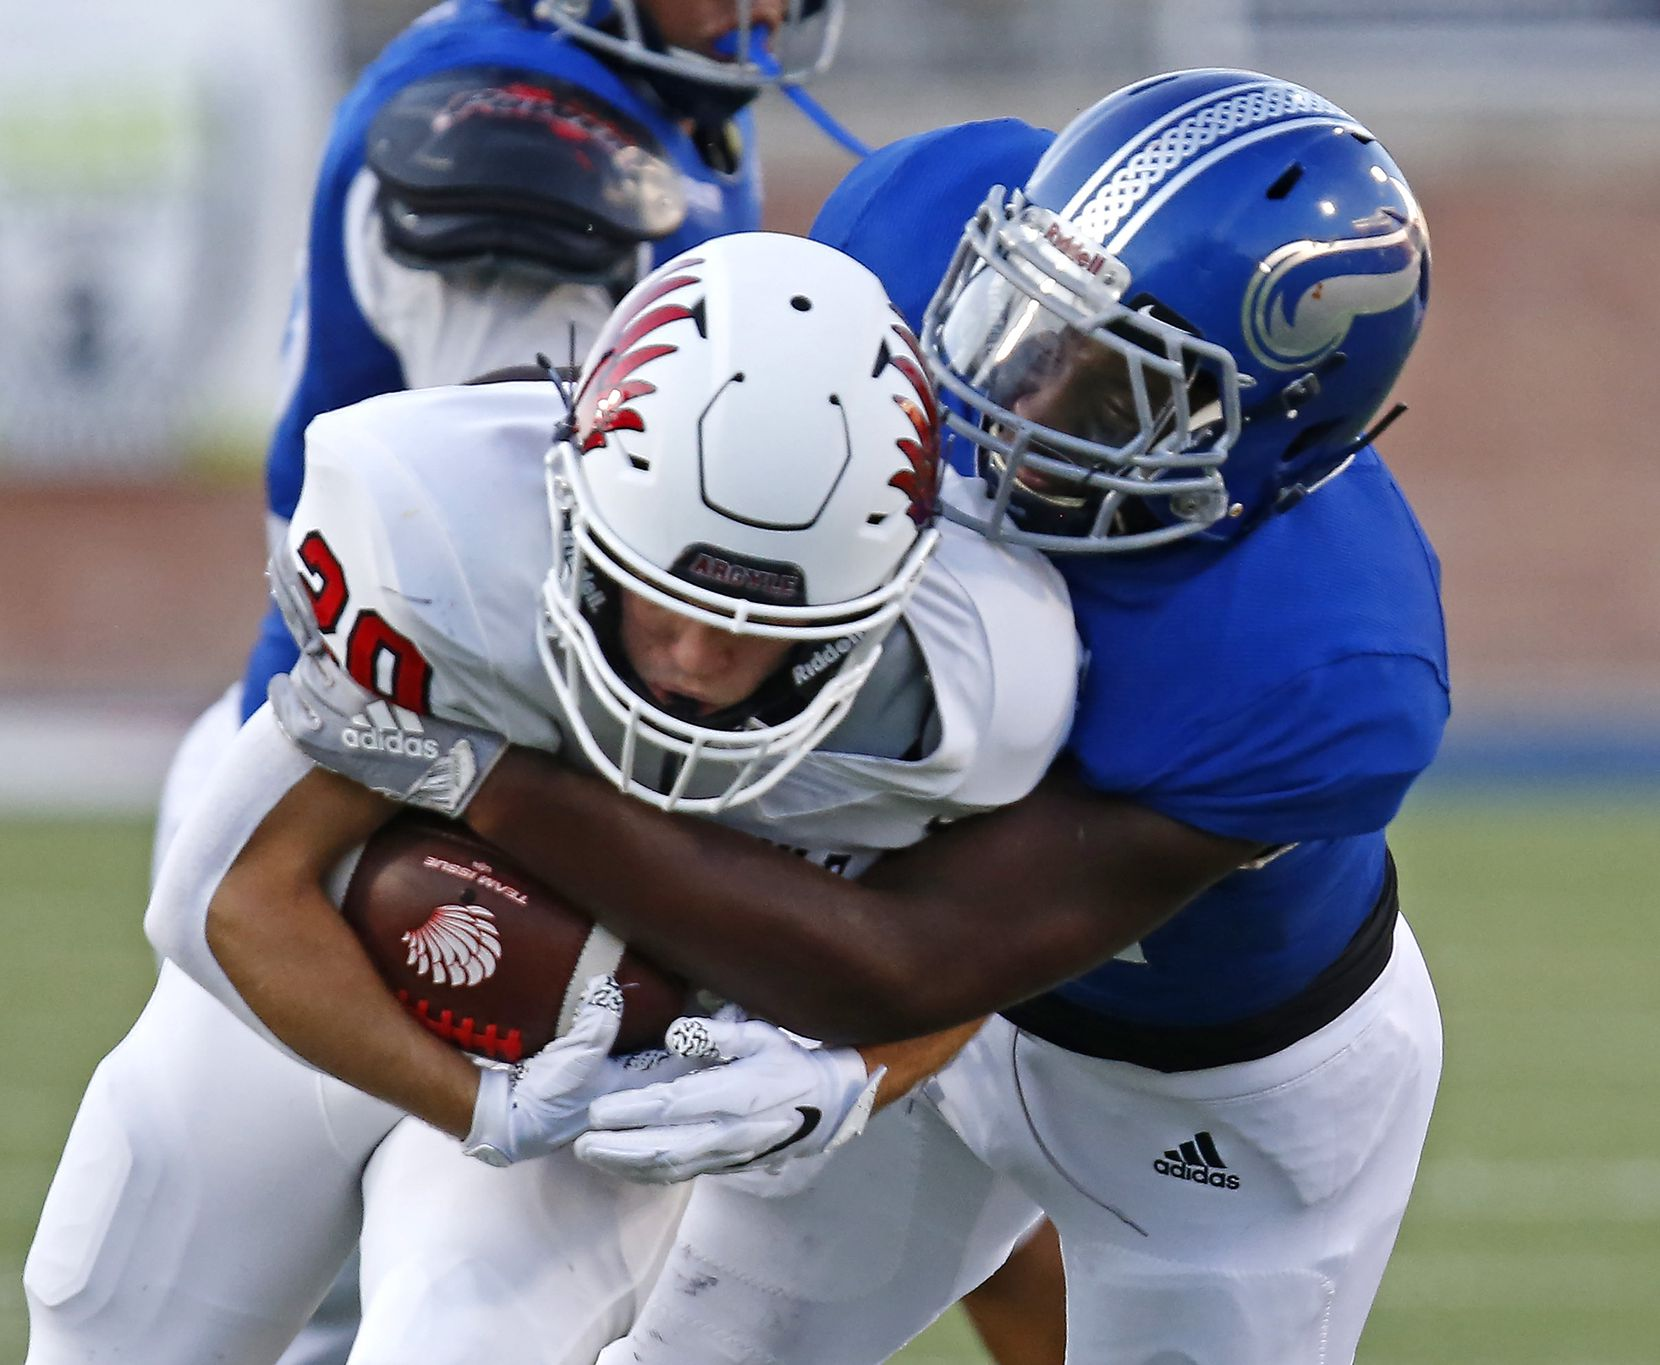 Nolan Catholic High School middle linebacker T.K. Woodson (44) tackles Argyle High School running back Landon Ferris (20) during the first half as Argyle High School hosted Nolan Catholic High School at Eagle Stadium in Allen on Saturday evening, August 28, 2021. (Stewart F. House/Special Contributor)